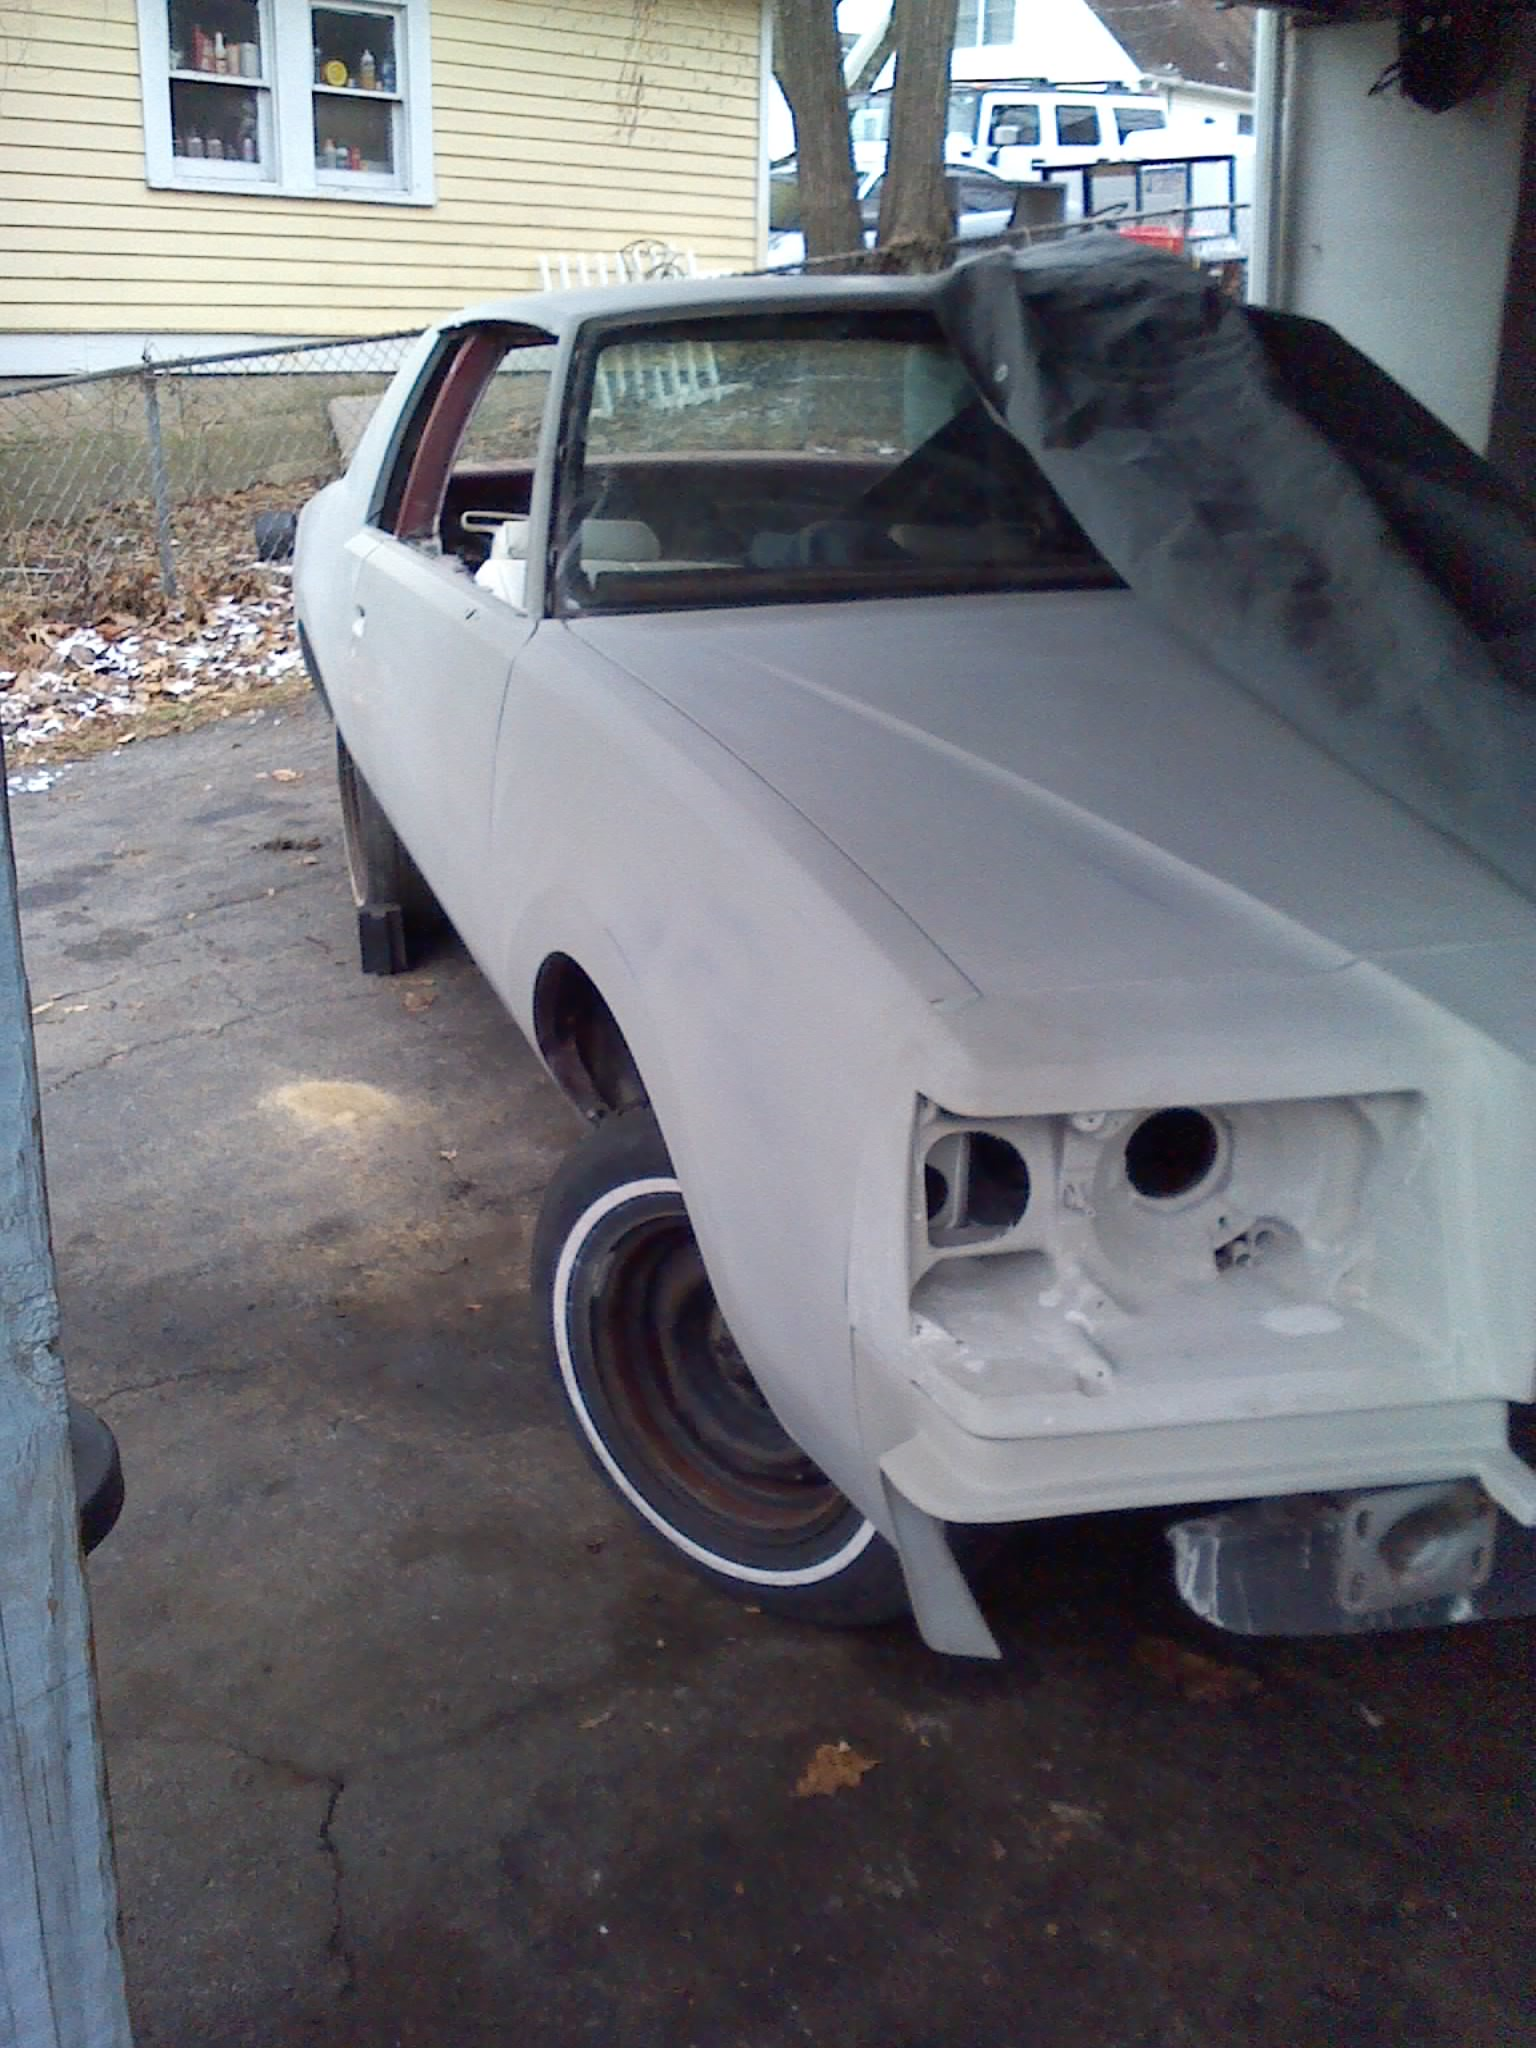 mfb496's 1978 Buick Regal